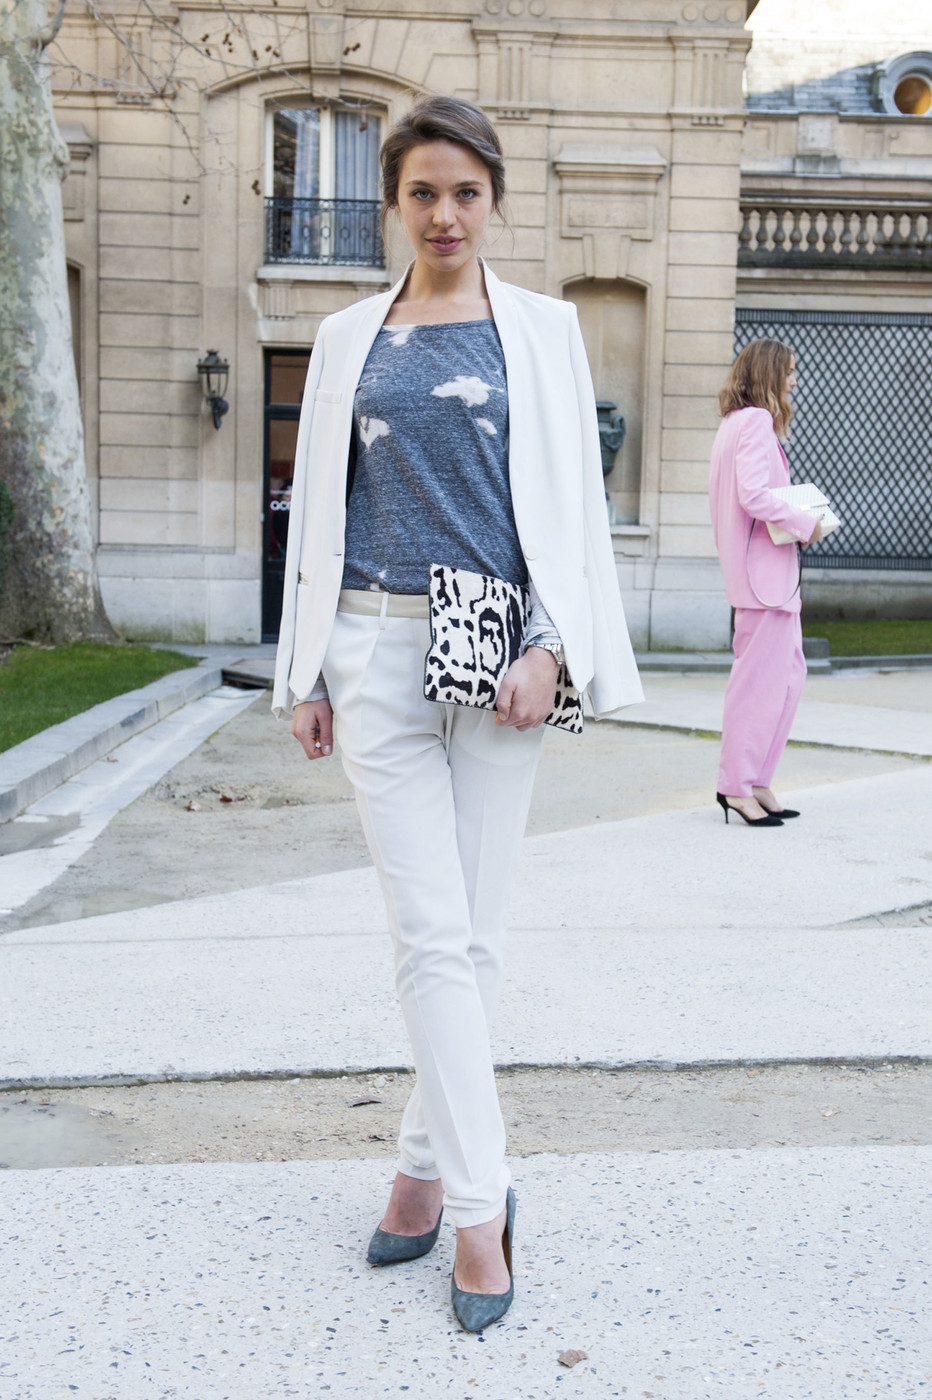 Luxe White The Most Standout Street Style At Paris Fashion Week Fall 2014 Stylebistro